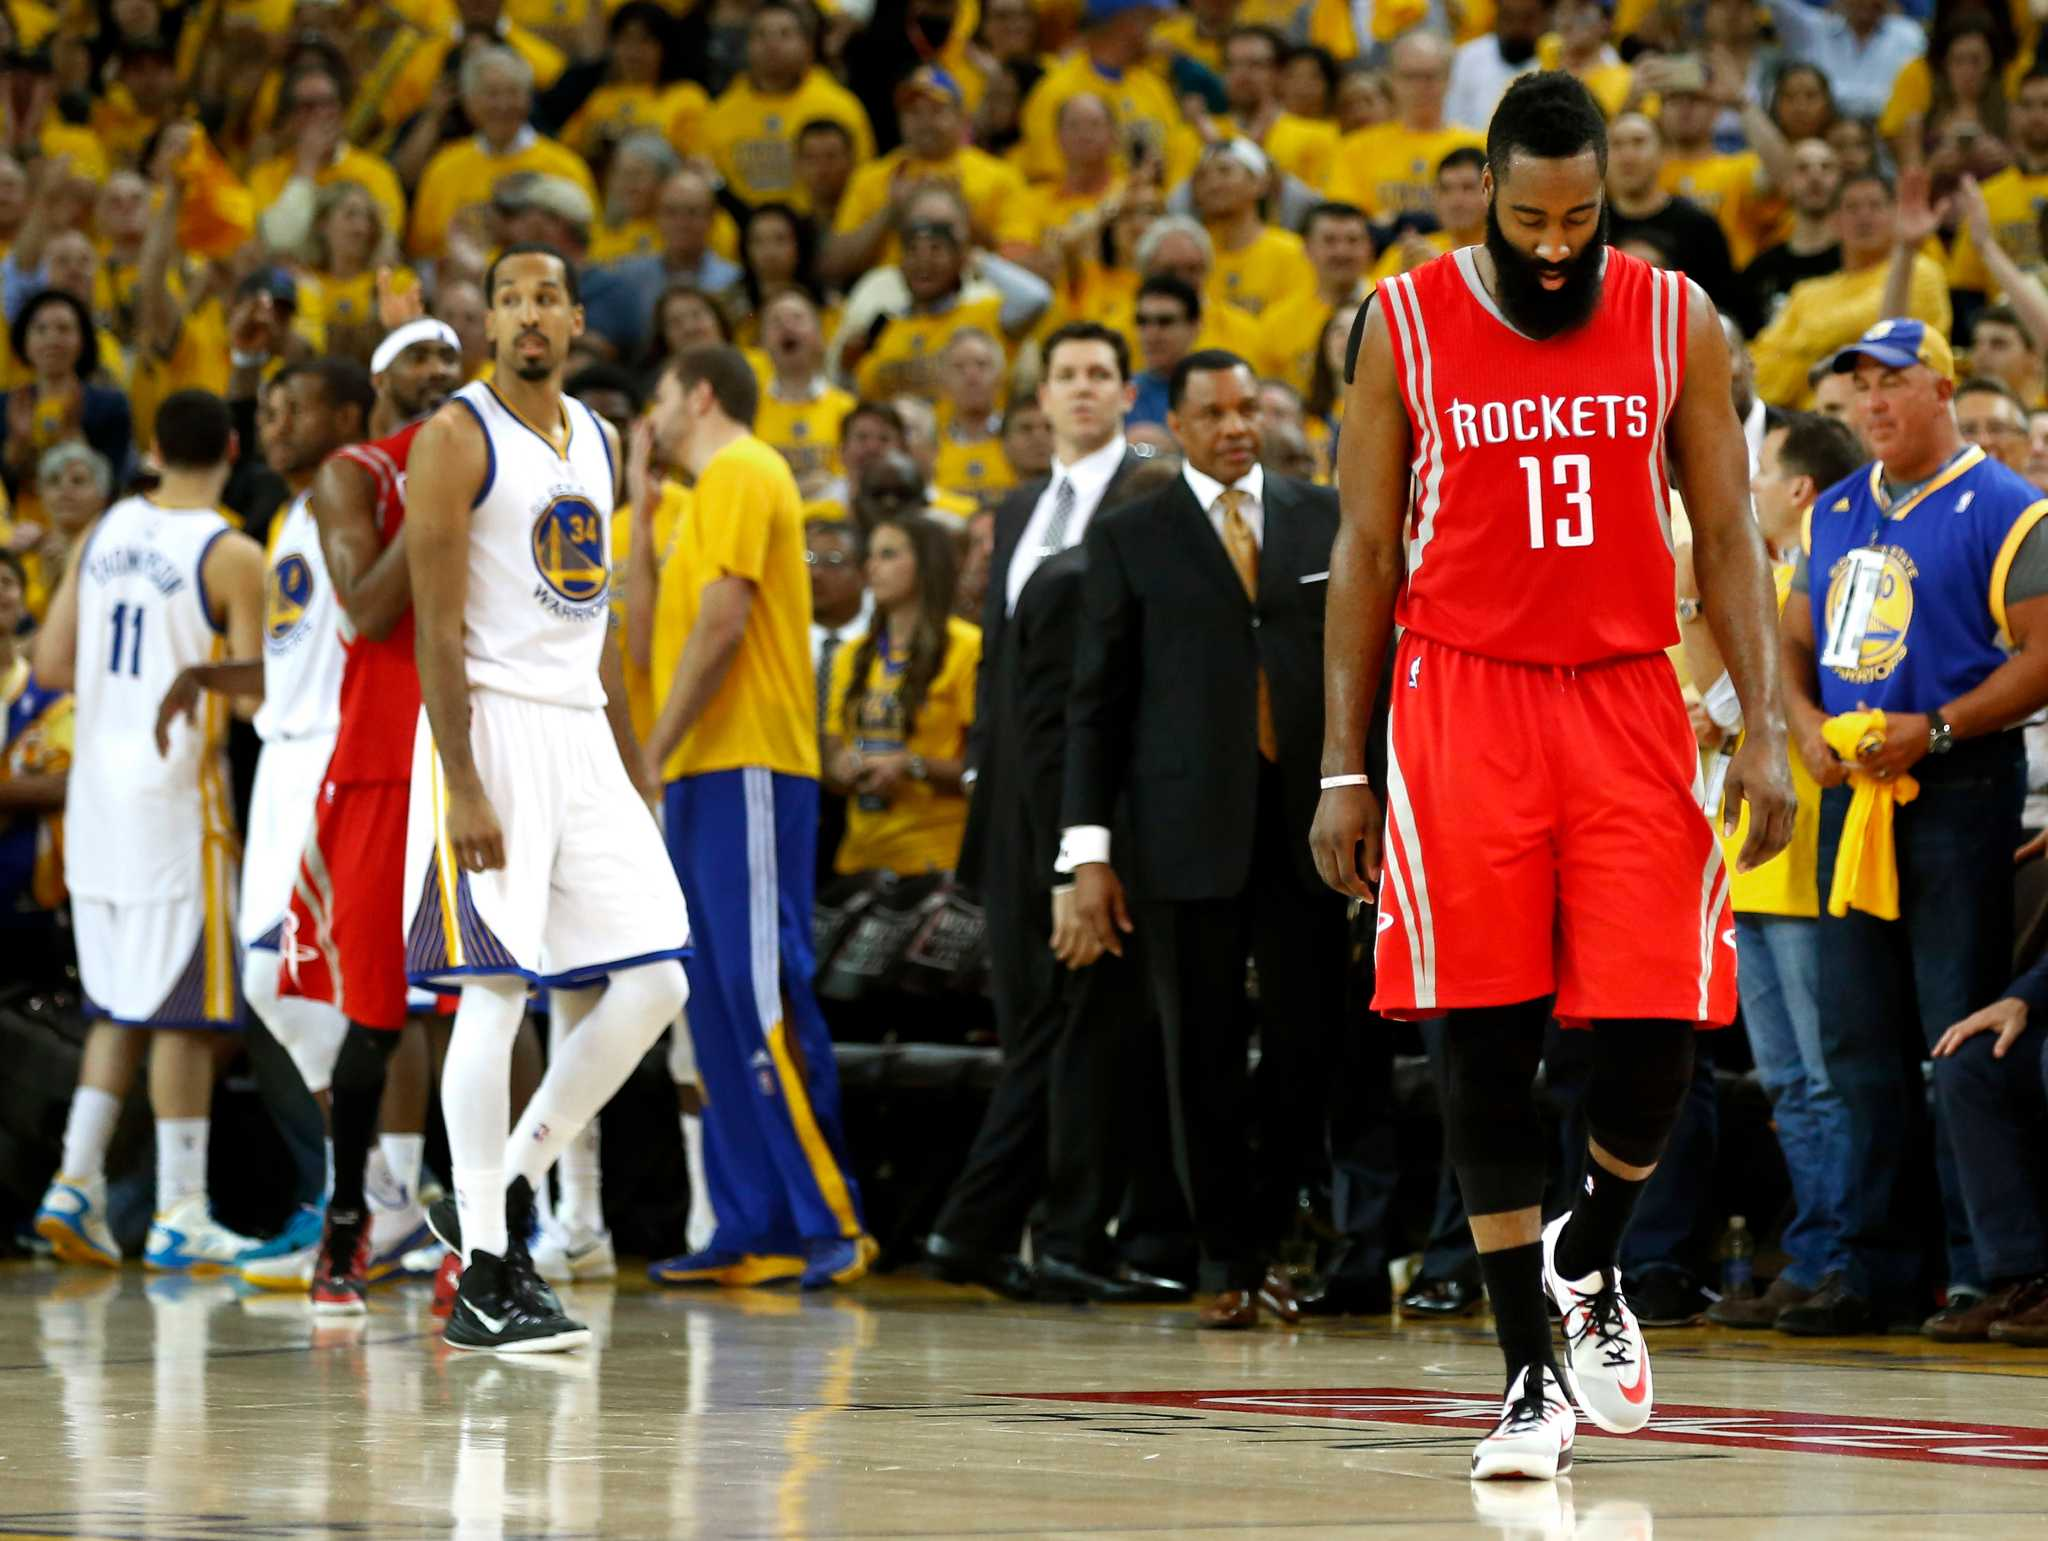 Warriors end Rockets' season with Game 5 win - HoustonChronicle.com